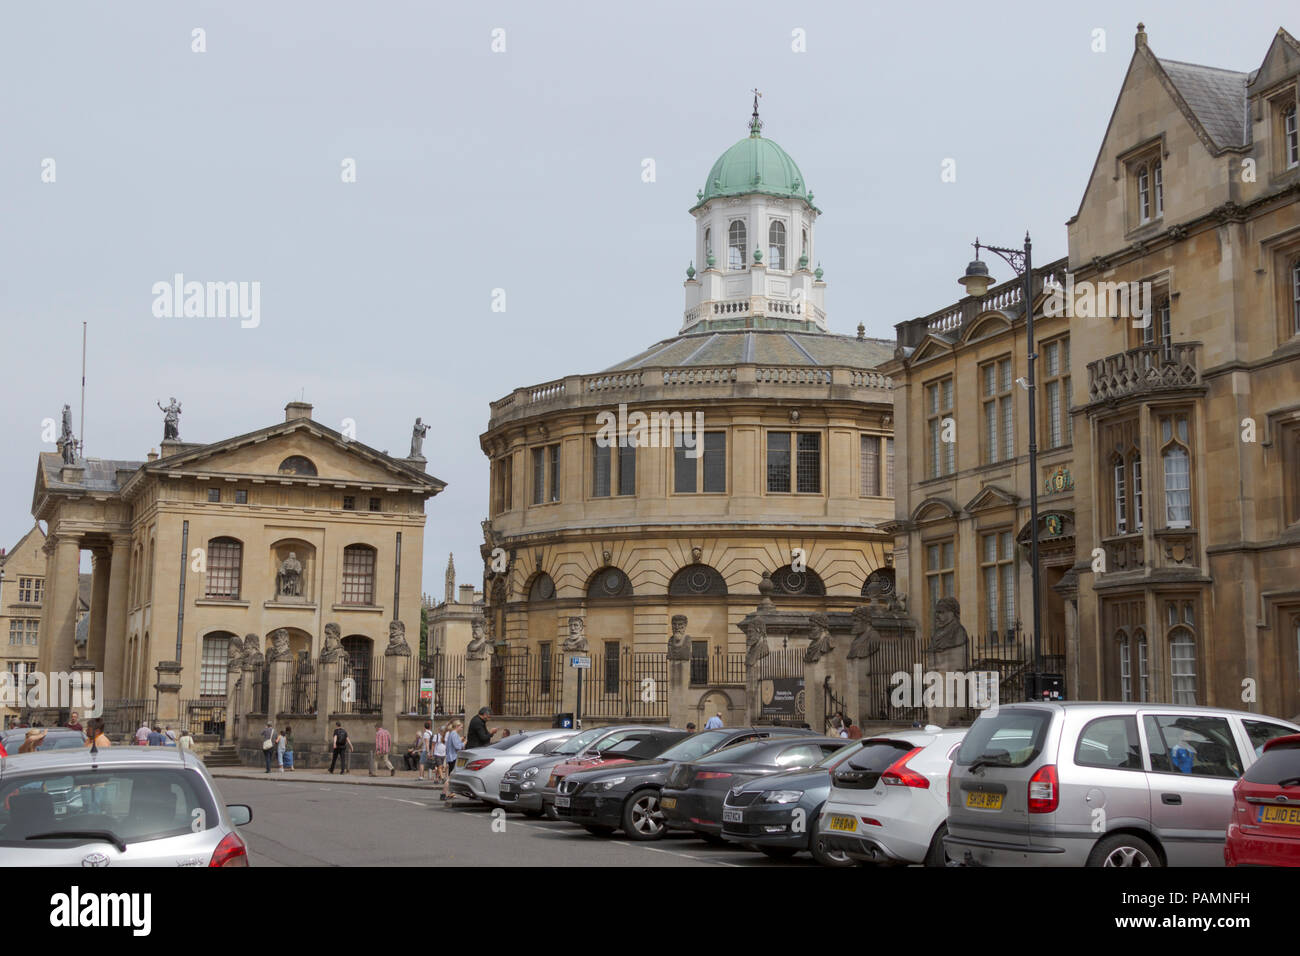 Oxford, Oxfordshire, UK. 23rd June 2018. UK Weather. Shoppers and Tourists enjoy the sunshine and shopping in picturesque Oxford. - Stock Image